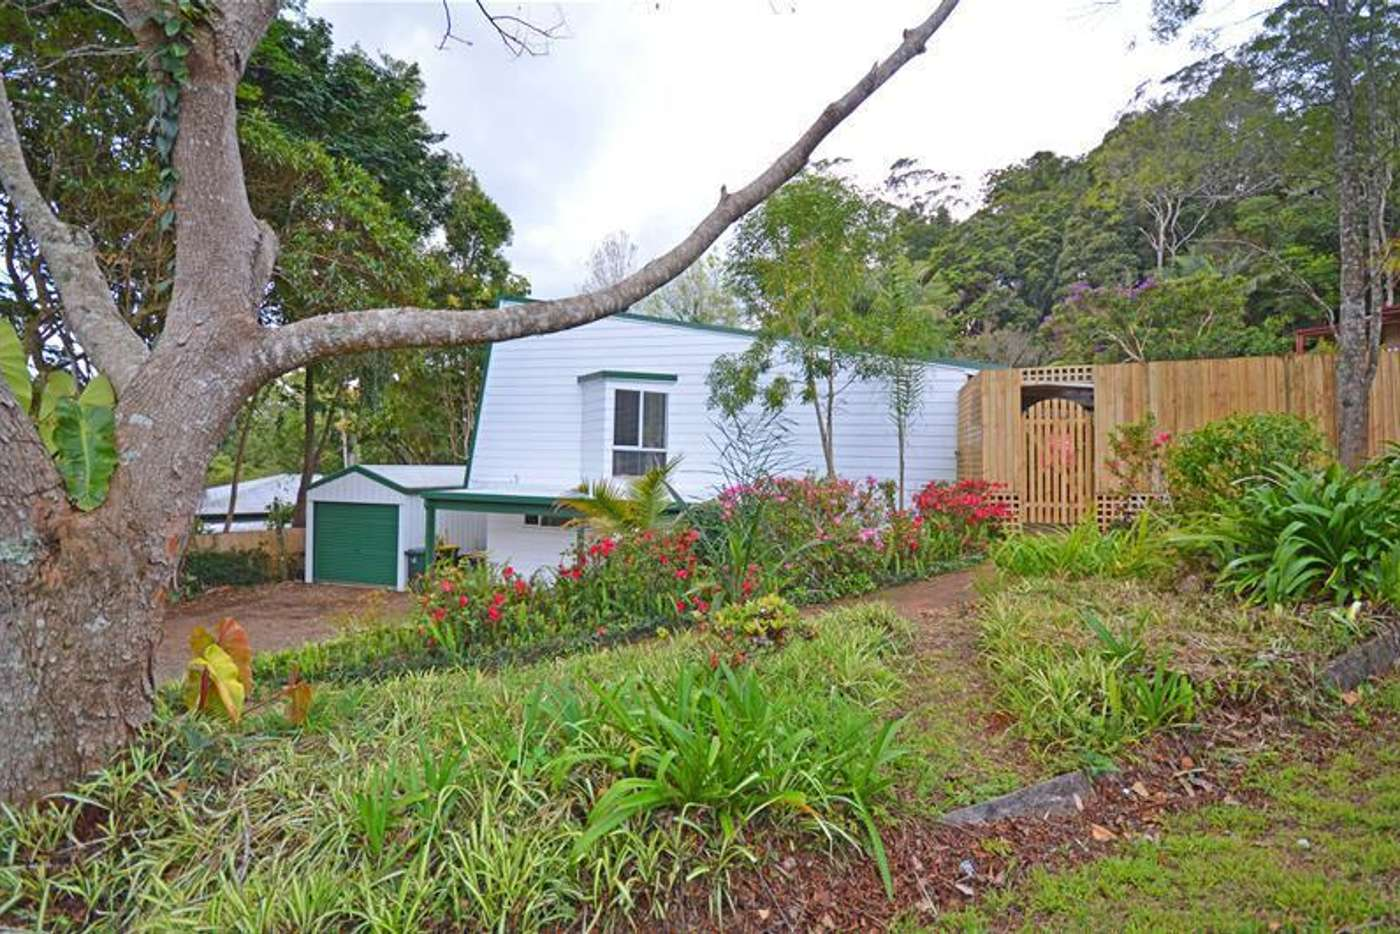 Main view of Homely house listing, 14 Tambora Court, Eagle Heights QLD 4271